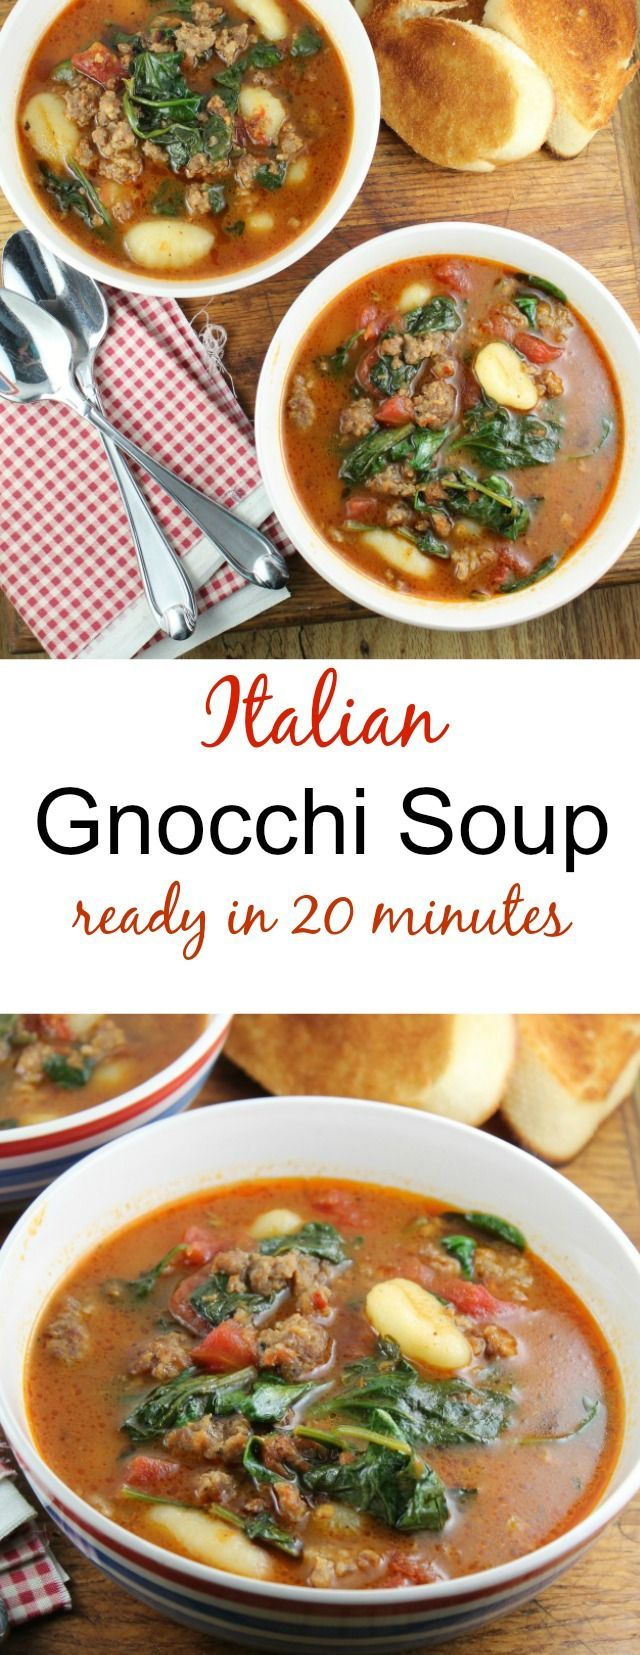 Italian Gnocchi Soup Recipe found at missinthekitchen.com(Italian Soup Recipes)